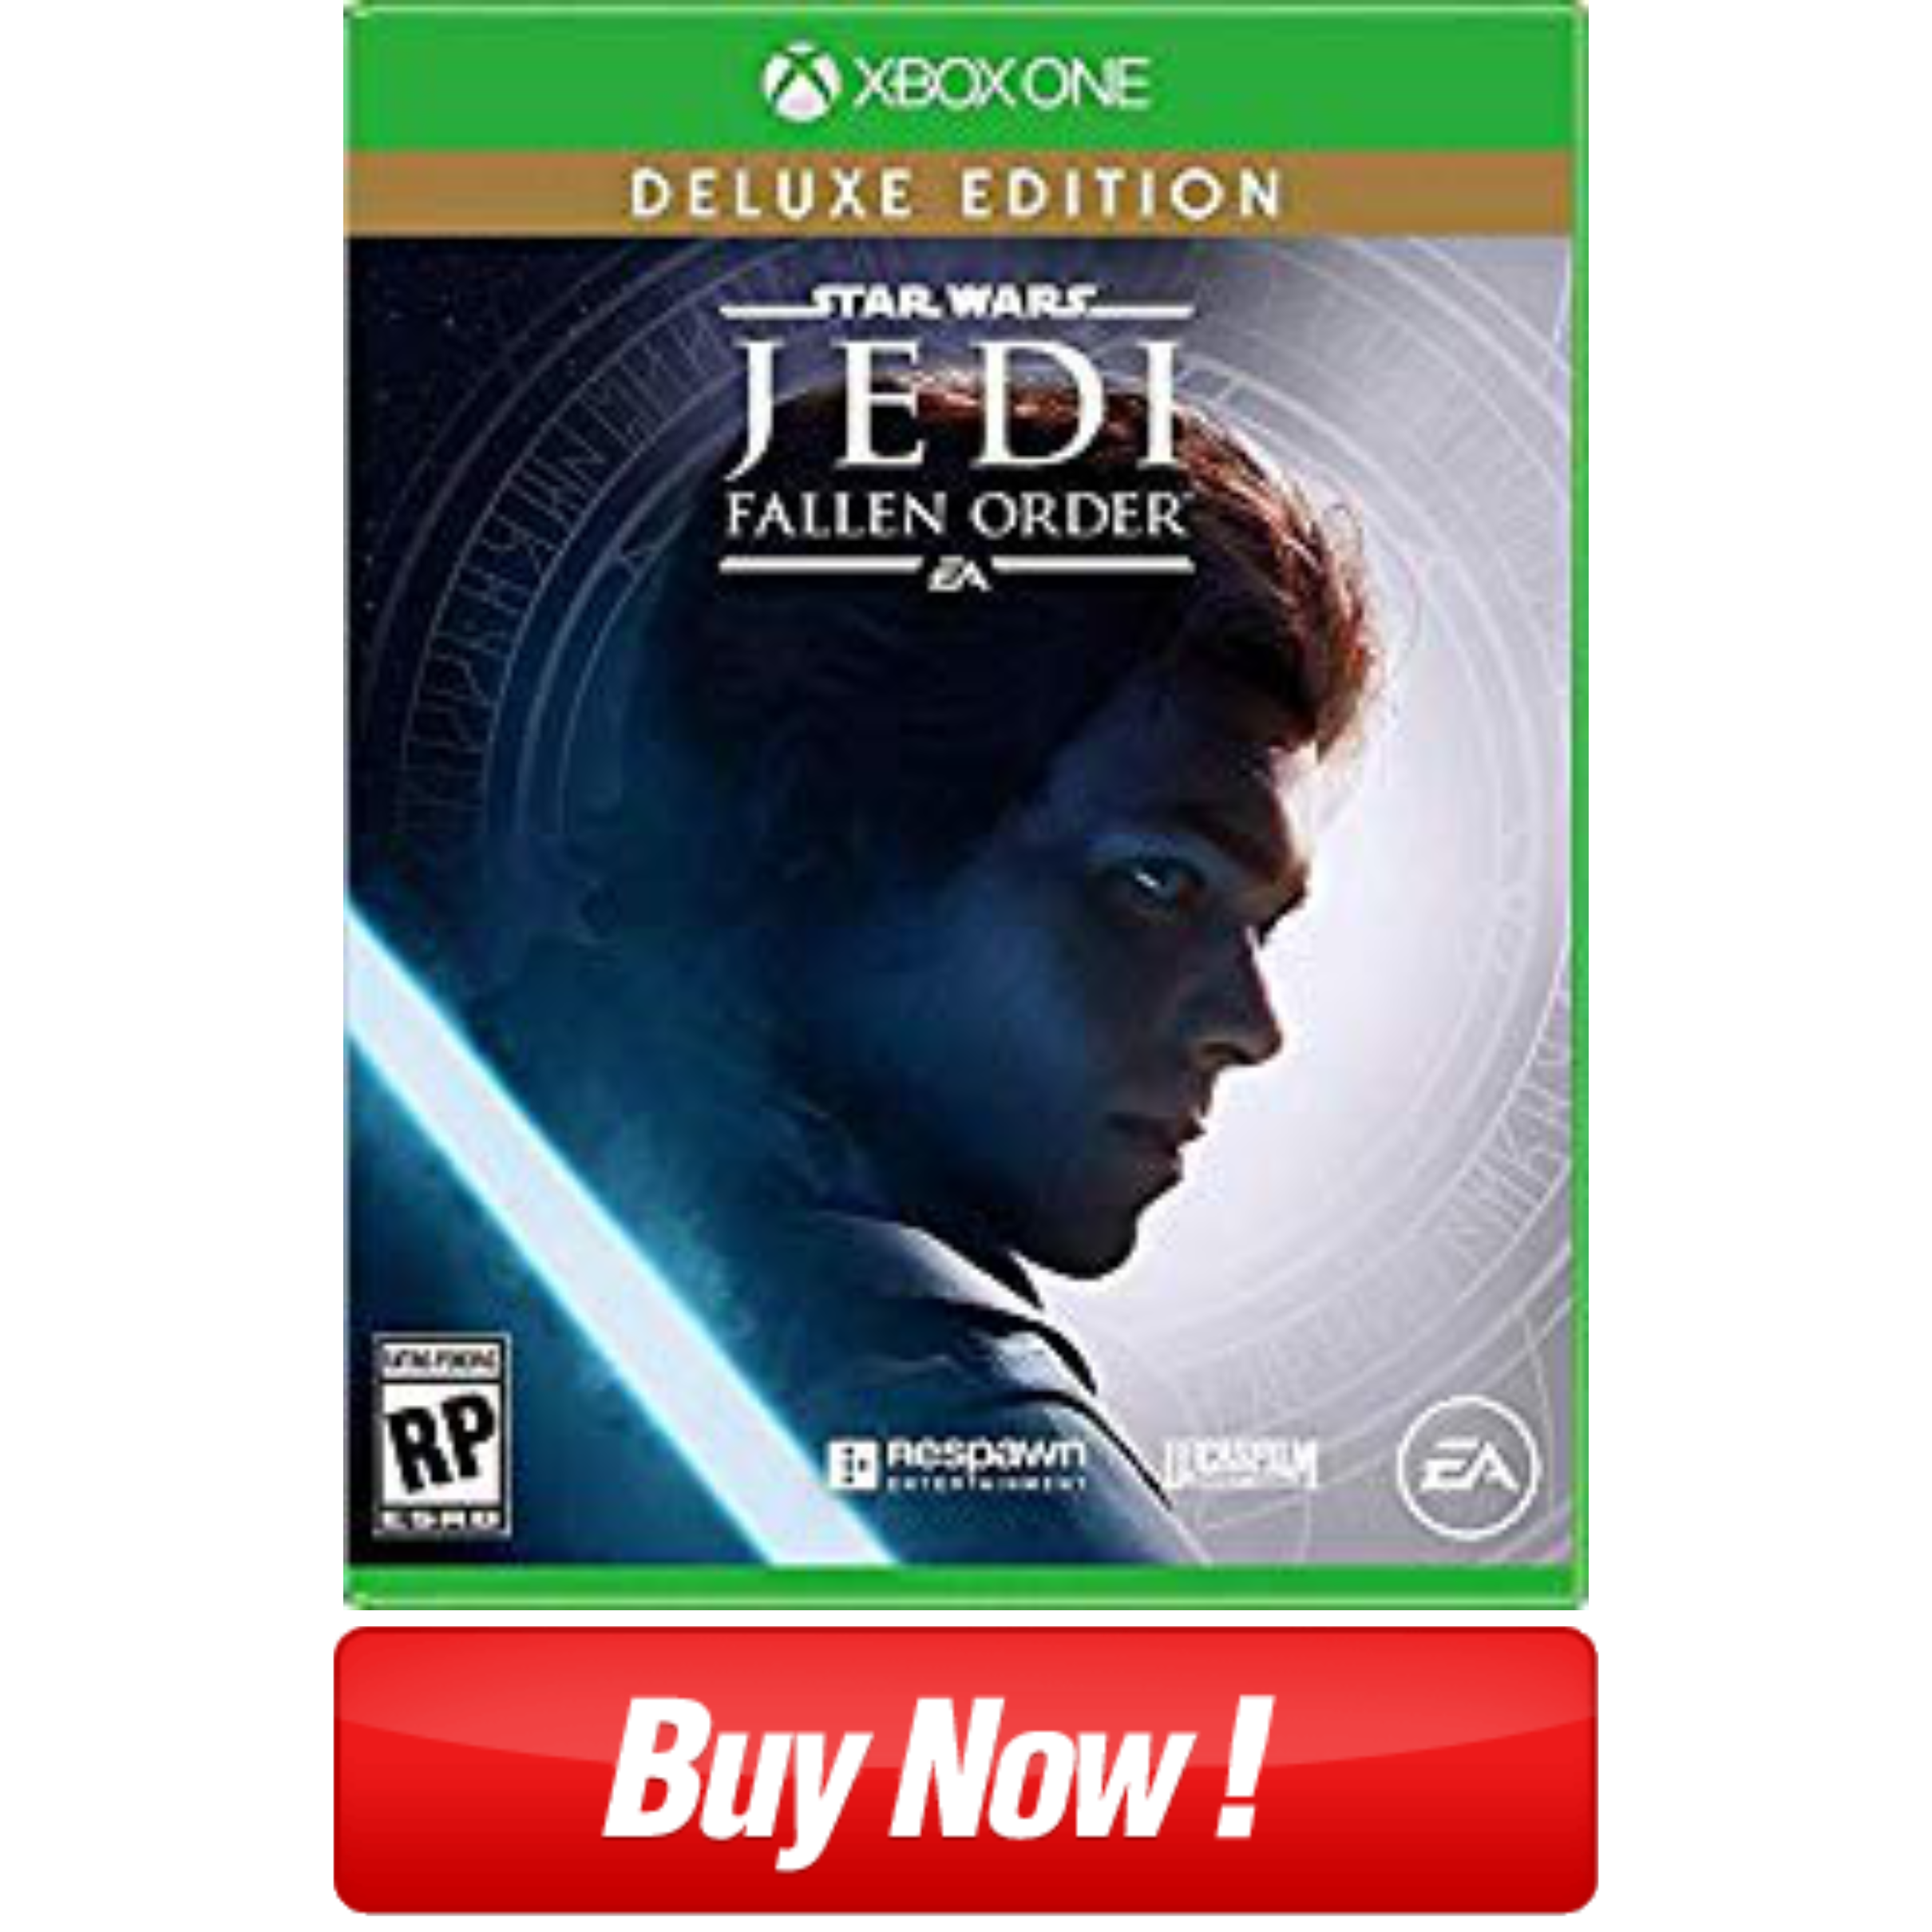 Buy Star Wars Jedi Fallen Order Deluxe Edition by Electronic Arts for Xbox One at Video Game Depot Find release dates, customer reviews, previews, and more